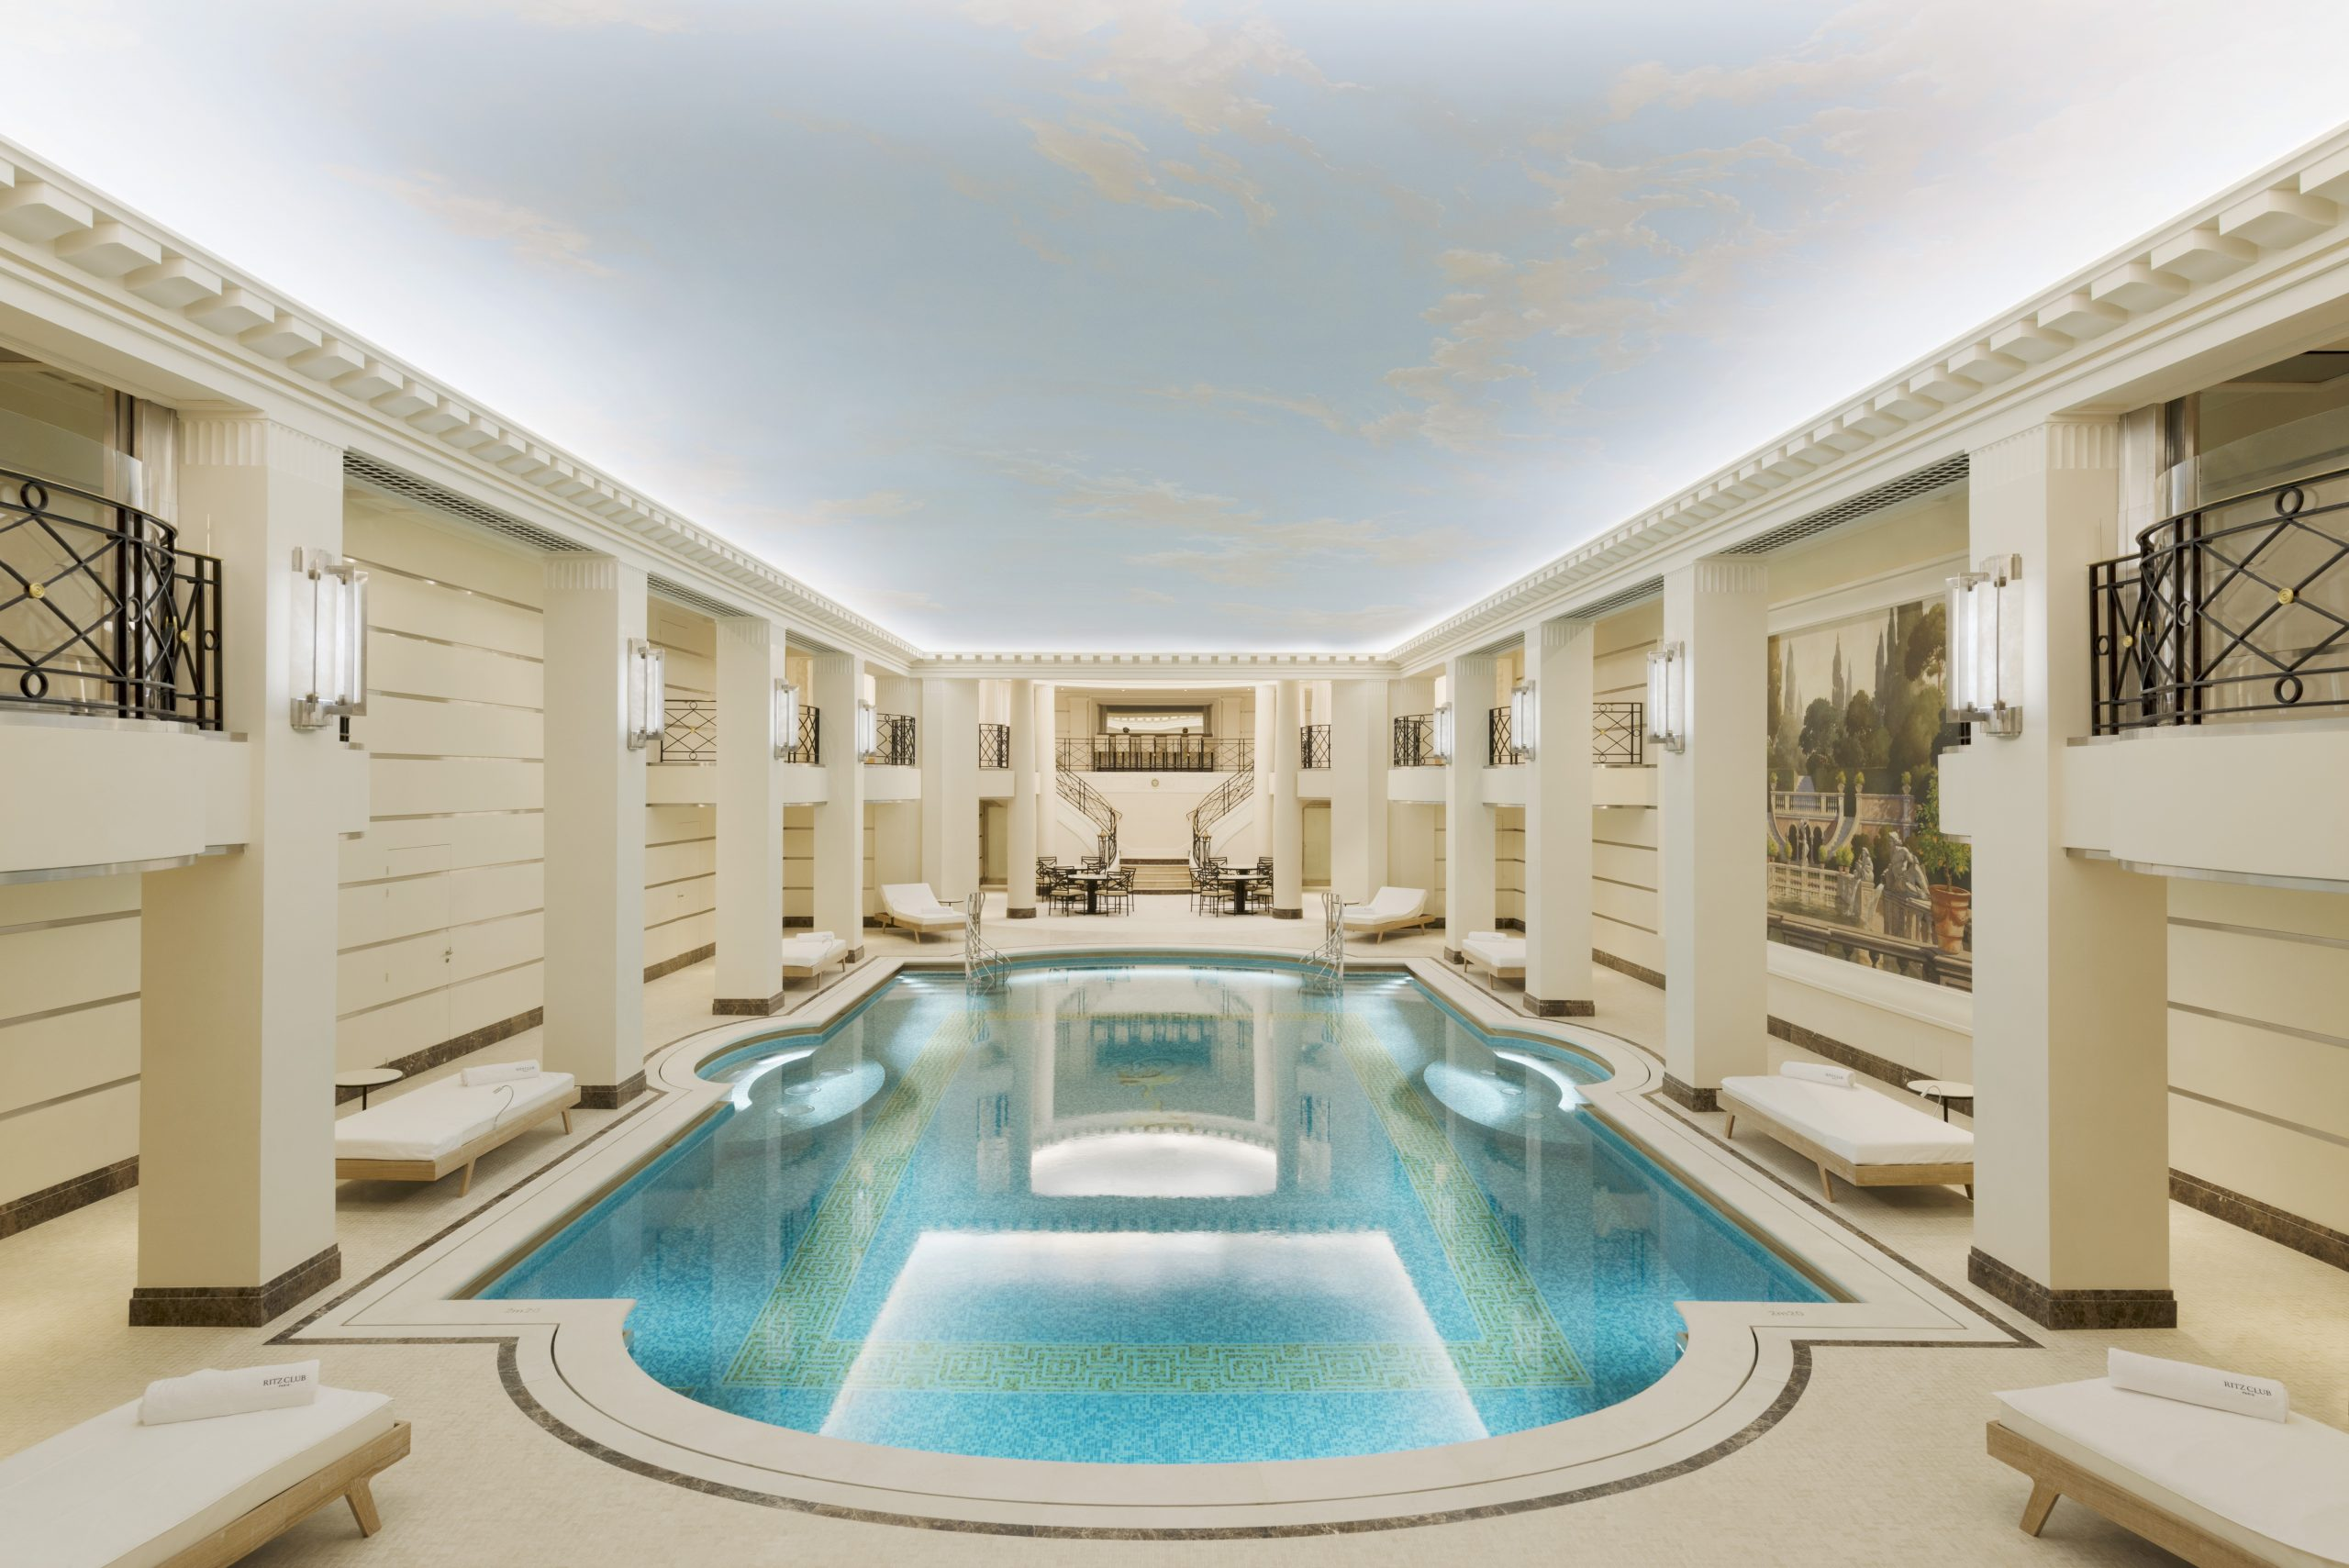 Ritz Paris - Piscine Spa Chanel | Elite Traveler avec Hotel Paris Piscine